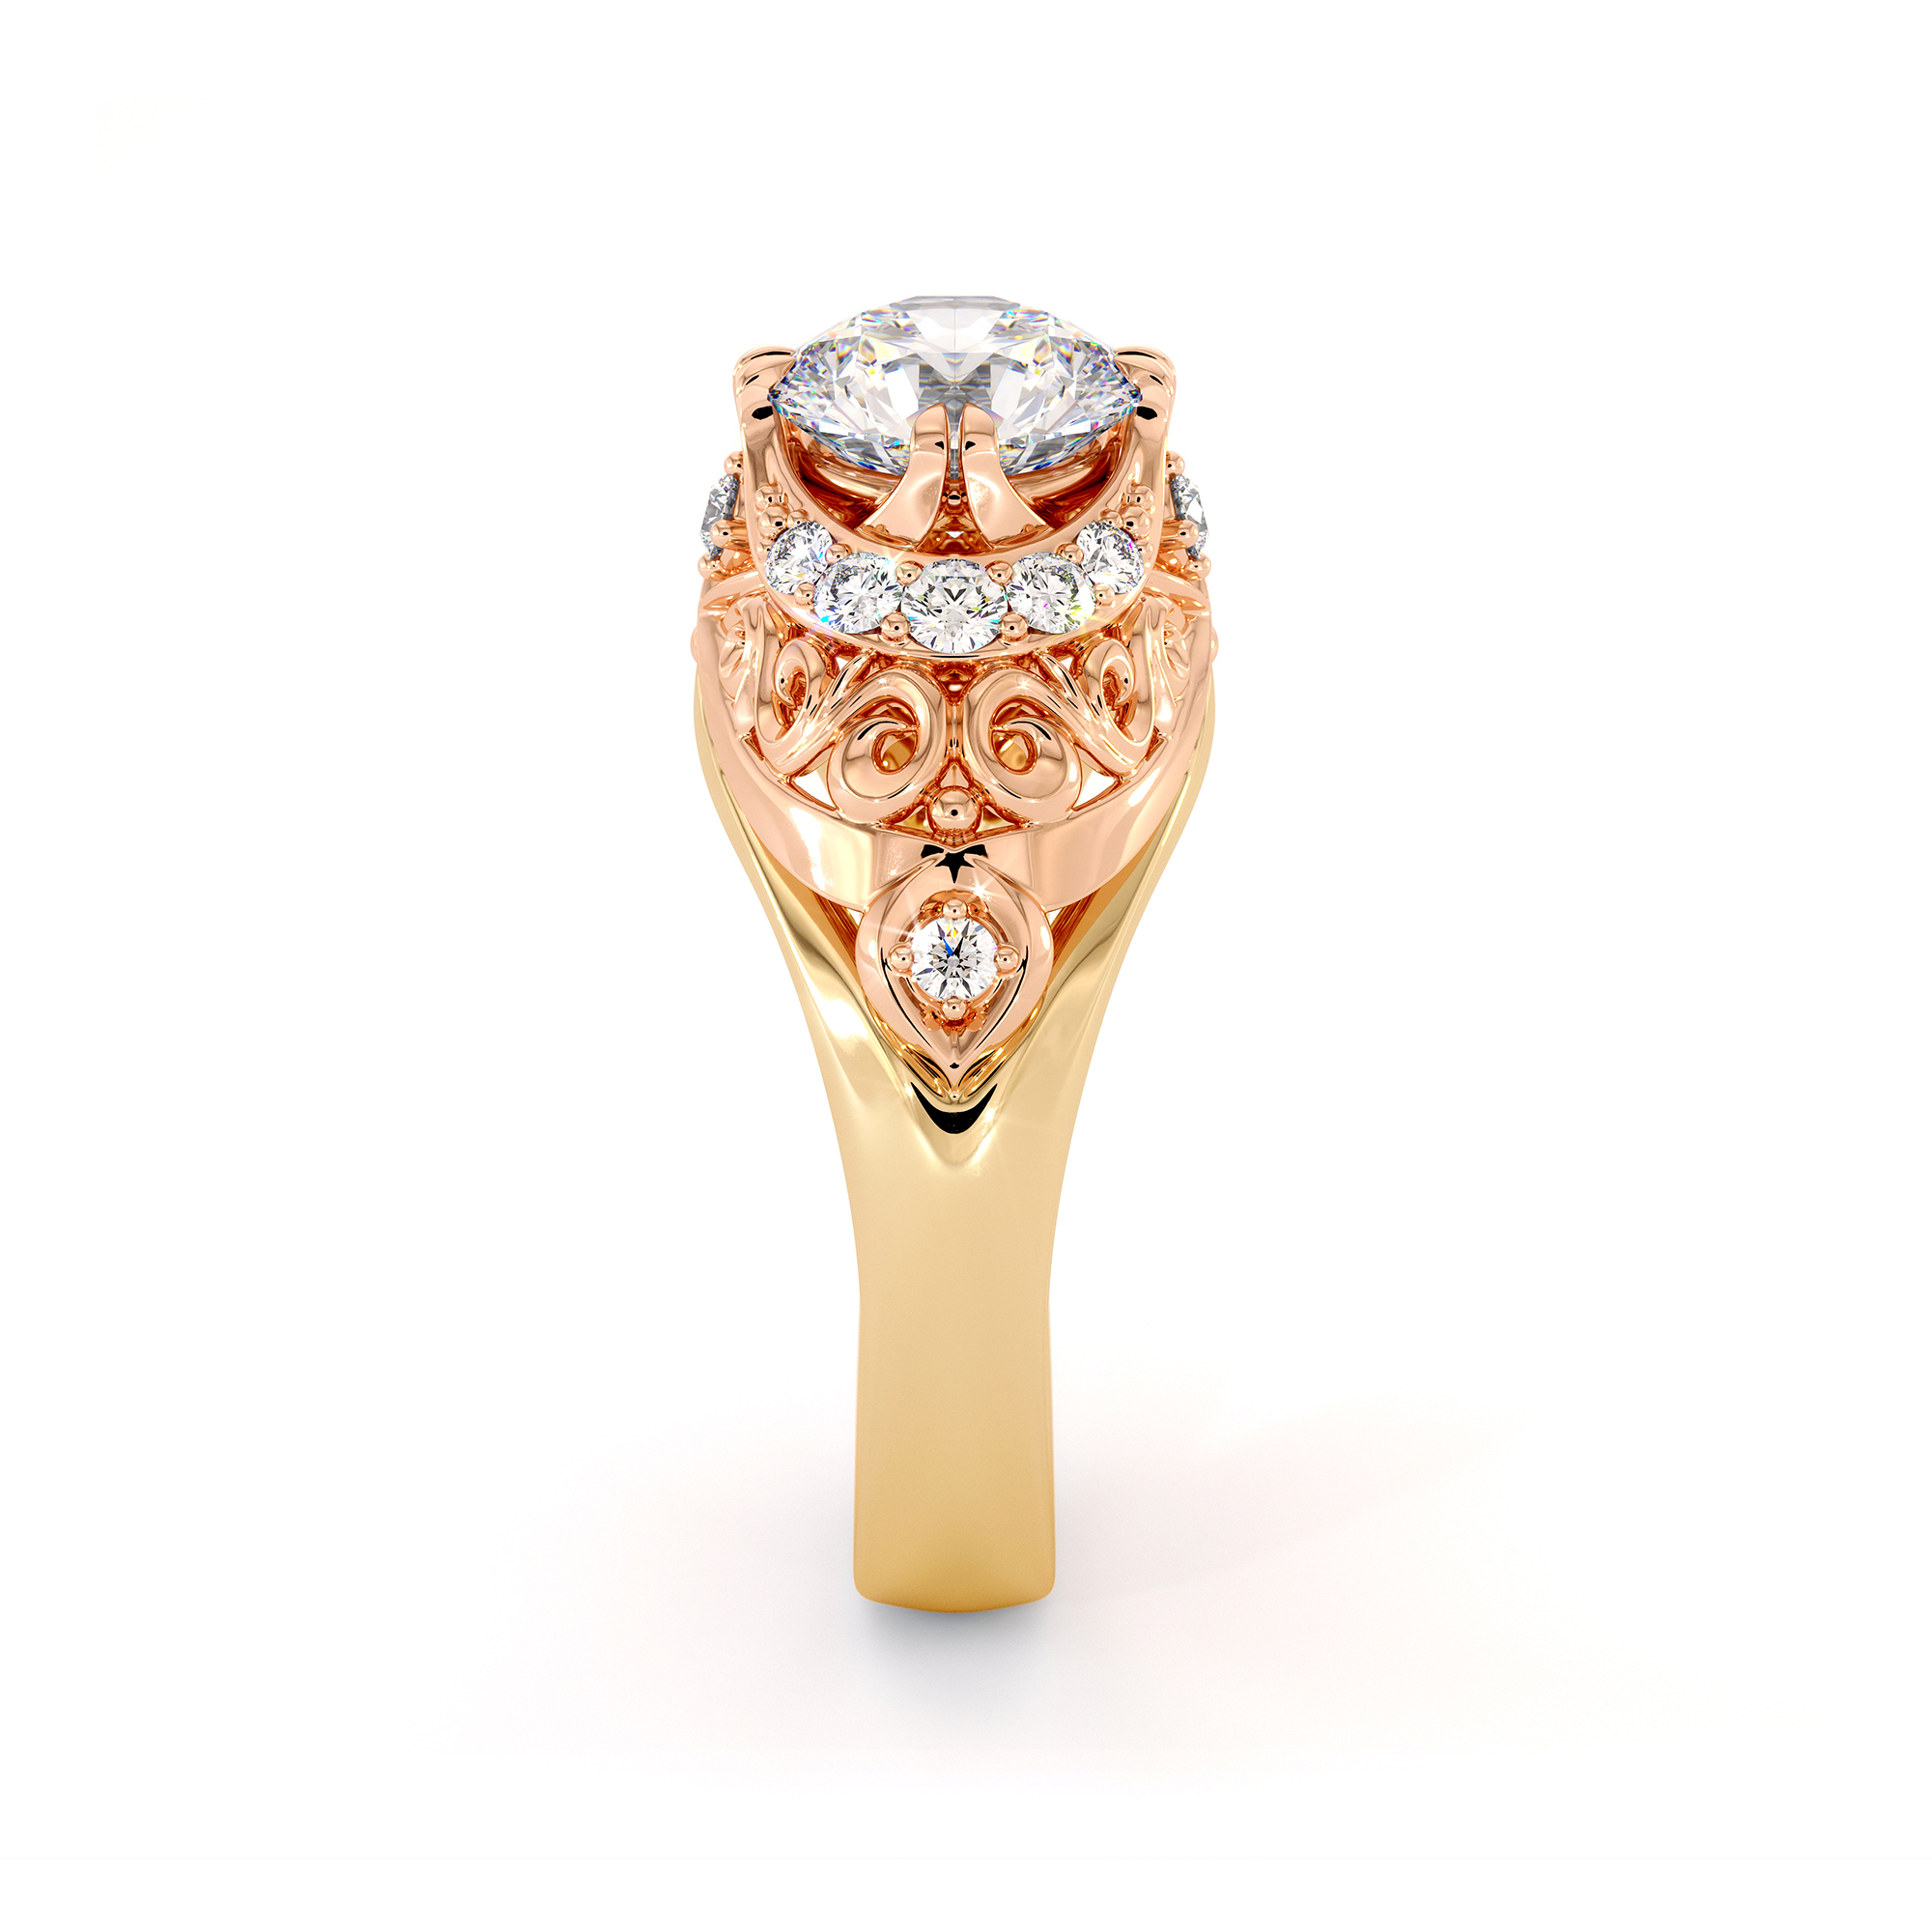 Modern Filigree 2 Tone Gold Engagement Ring Queenly Style Diamonds Ring 1.55 Ct. Round Moissanite Ring